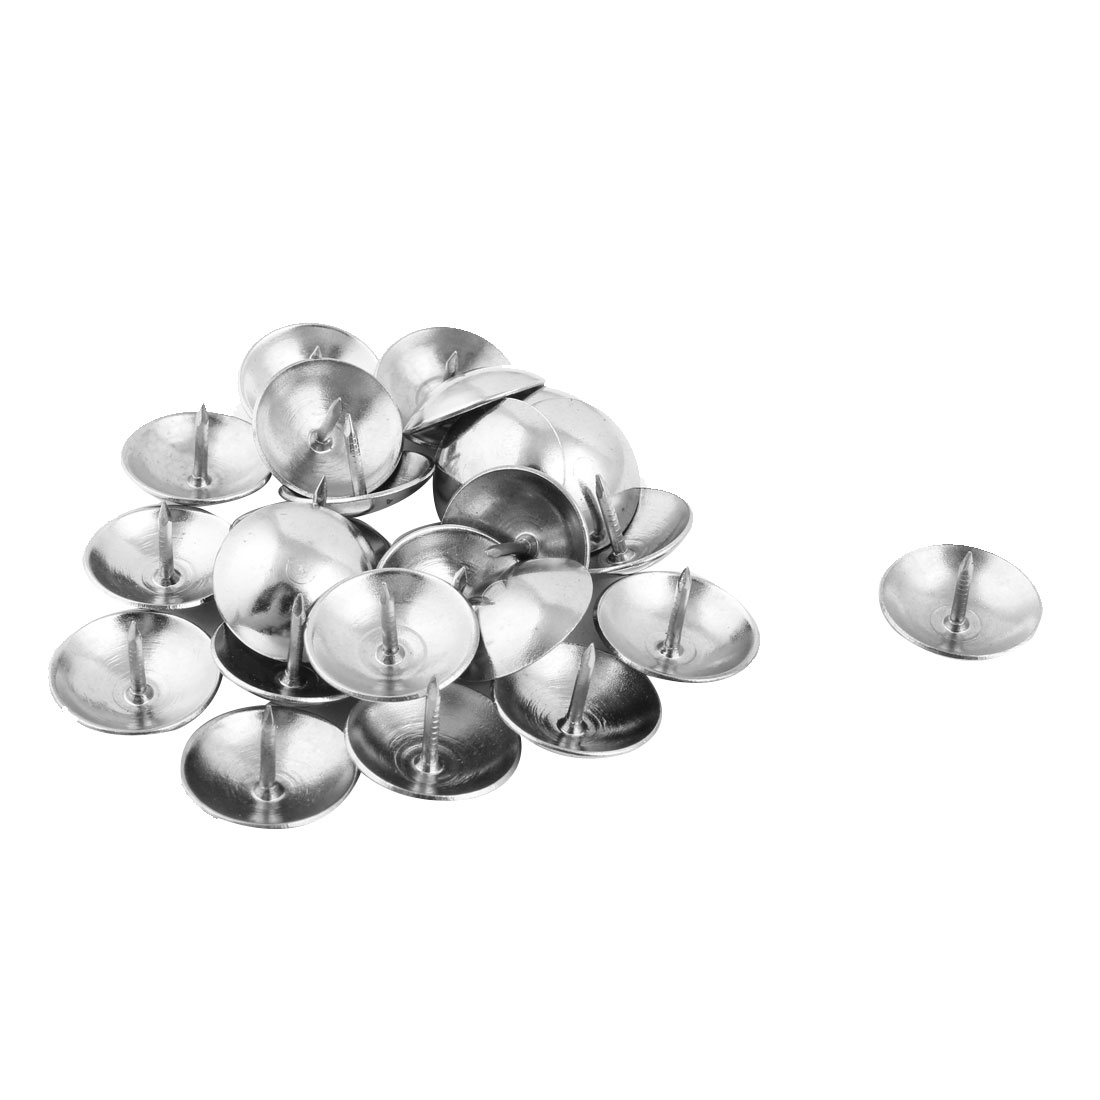 Furniture Metal Round Shaped Upholstery Tack Nail Silver Tone 18 x 12mm 25pcs